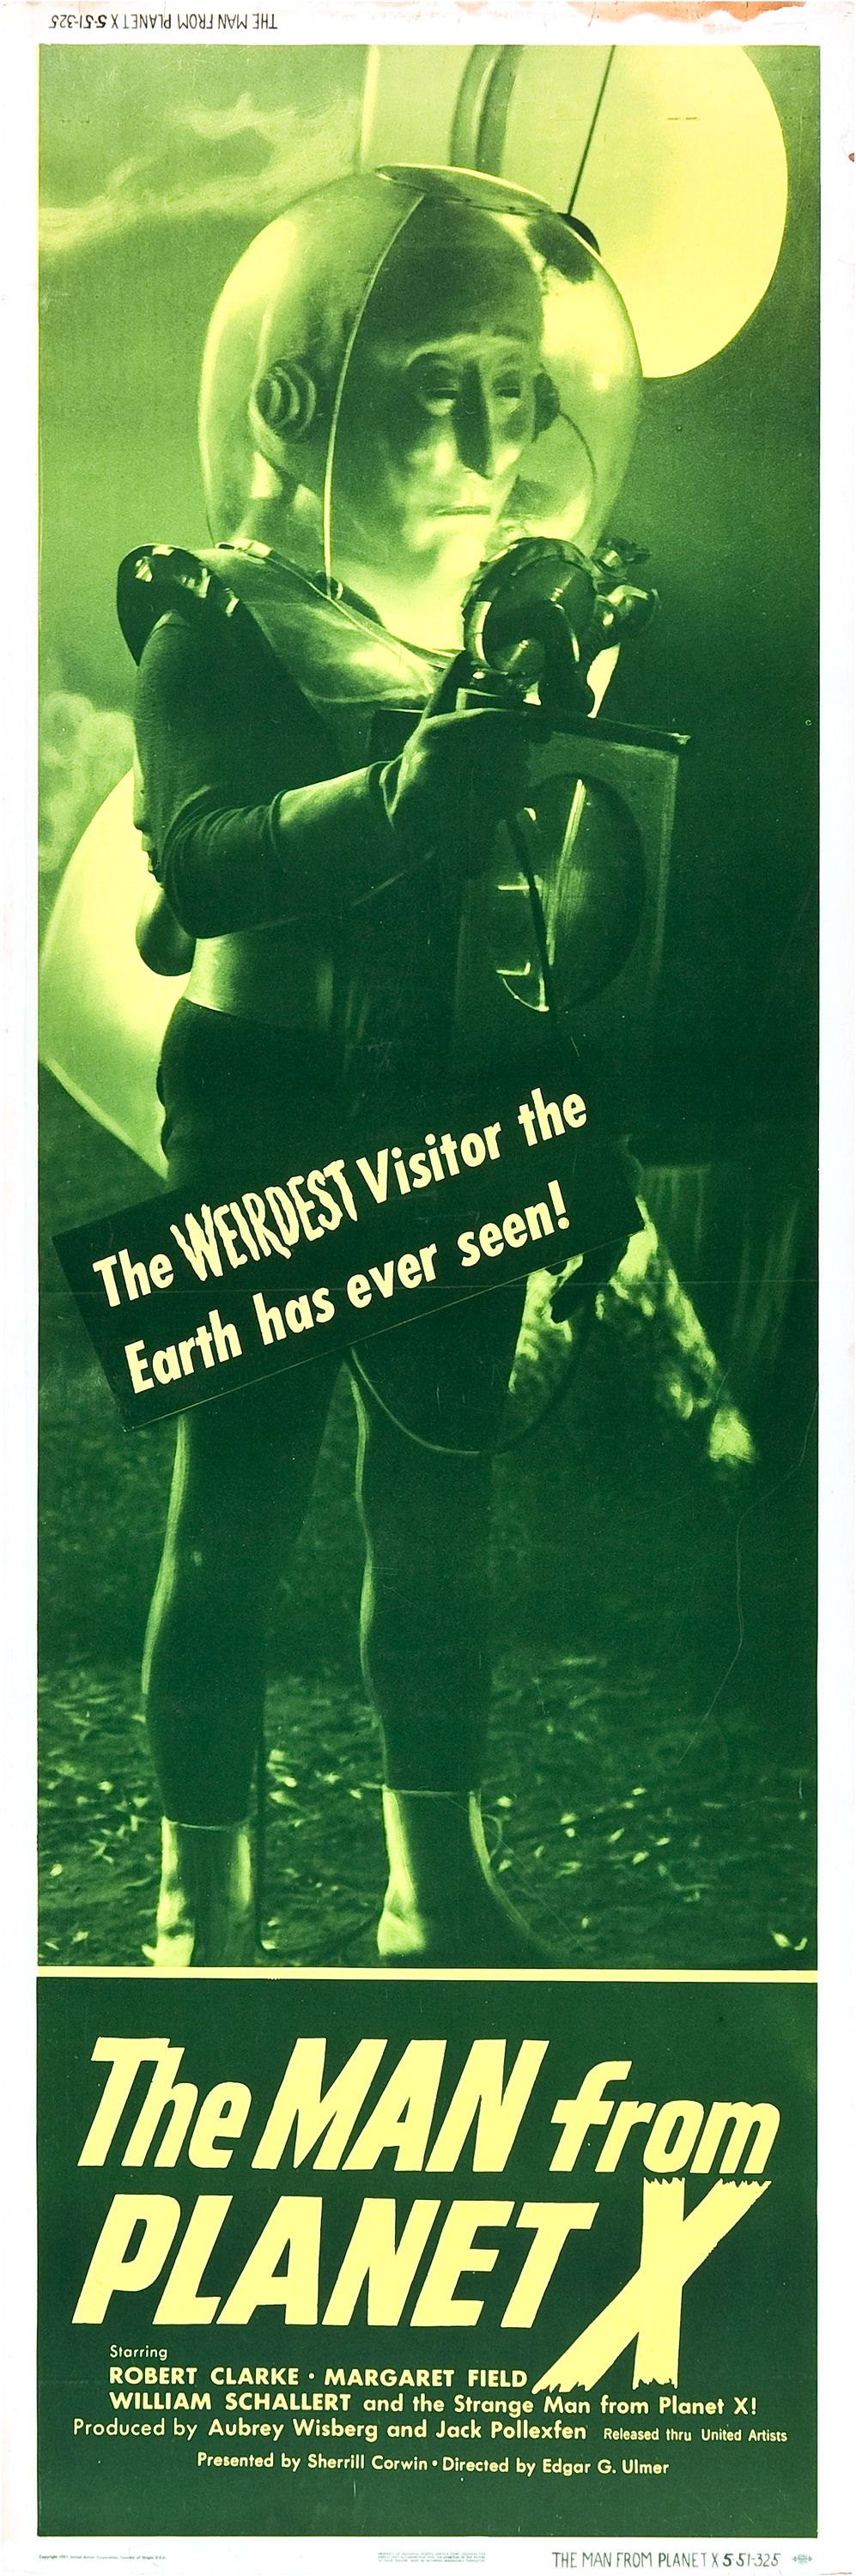 The Man from Planet X (1951)